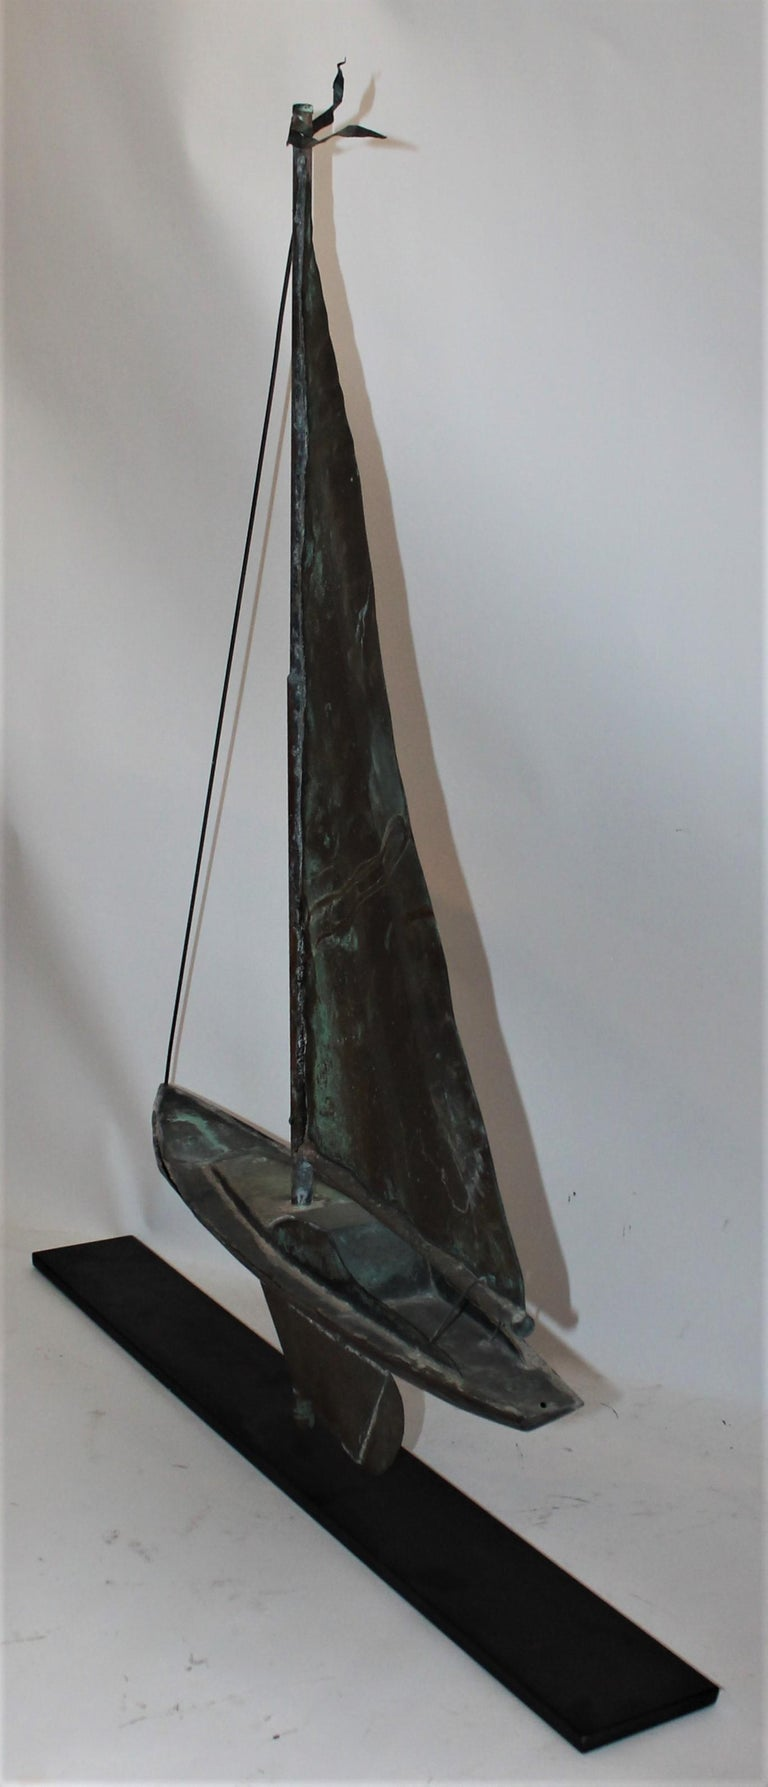 Sail boat weather vane from early 1900s in patinated 